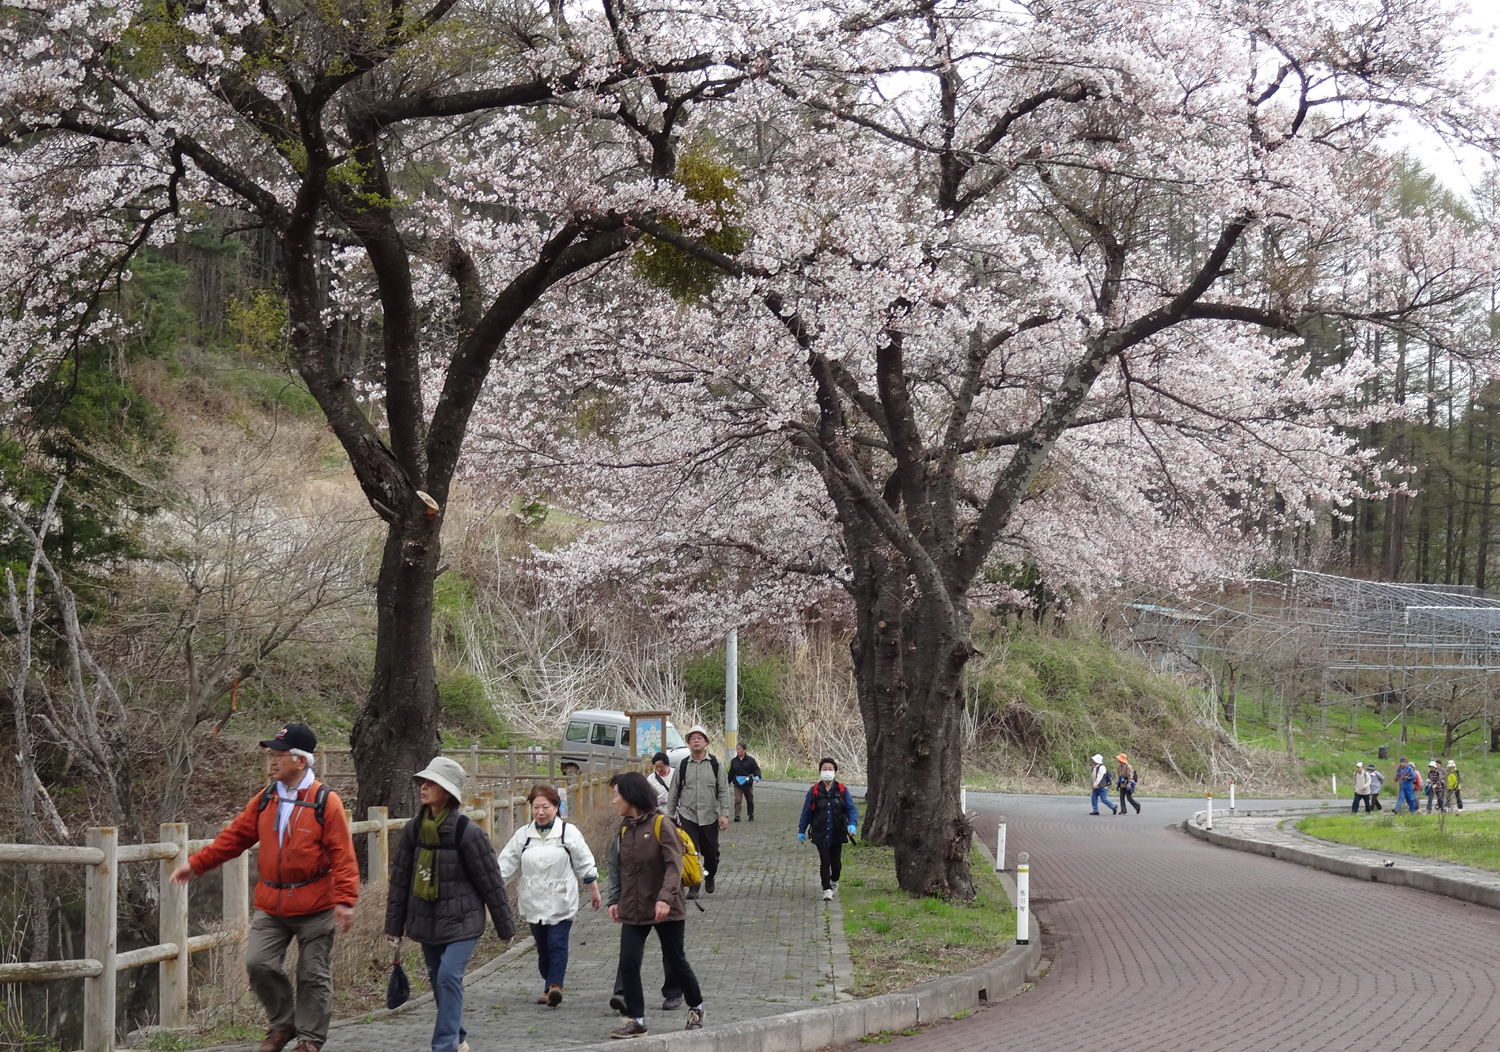 Cherry blossom viewing walk of fruit tree